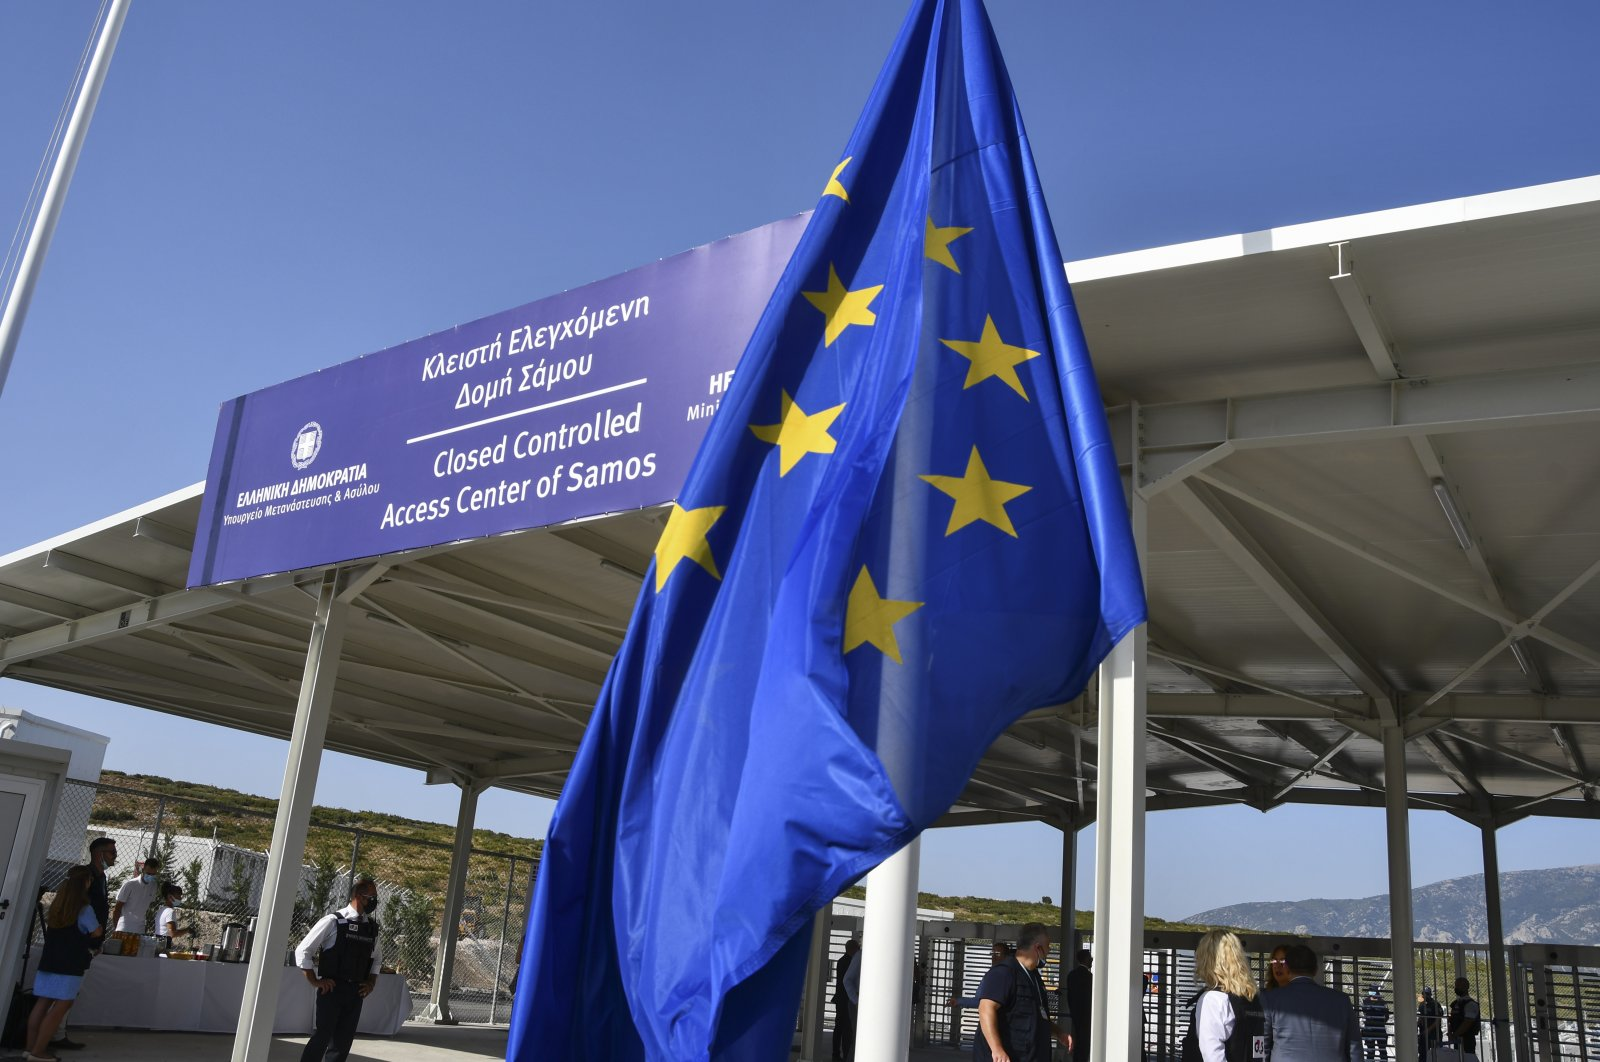 A view of the entrance of the new multi-purpose reception and identification migrant center near the town of Vathy, on the eastern Aegean island of Samos, Greece, Sept. 18, 2021. (AP Photo)